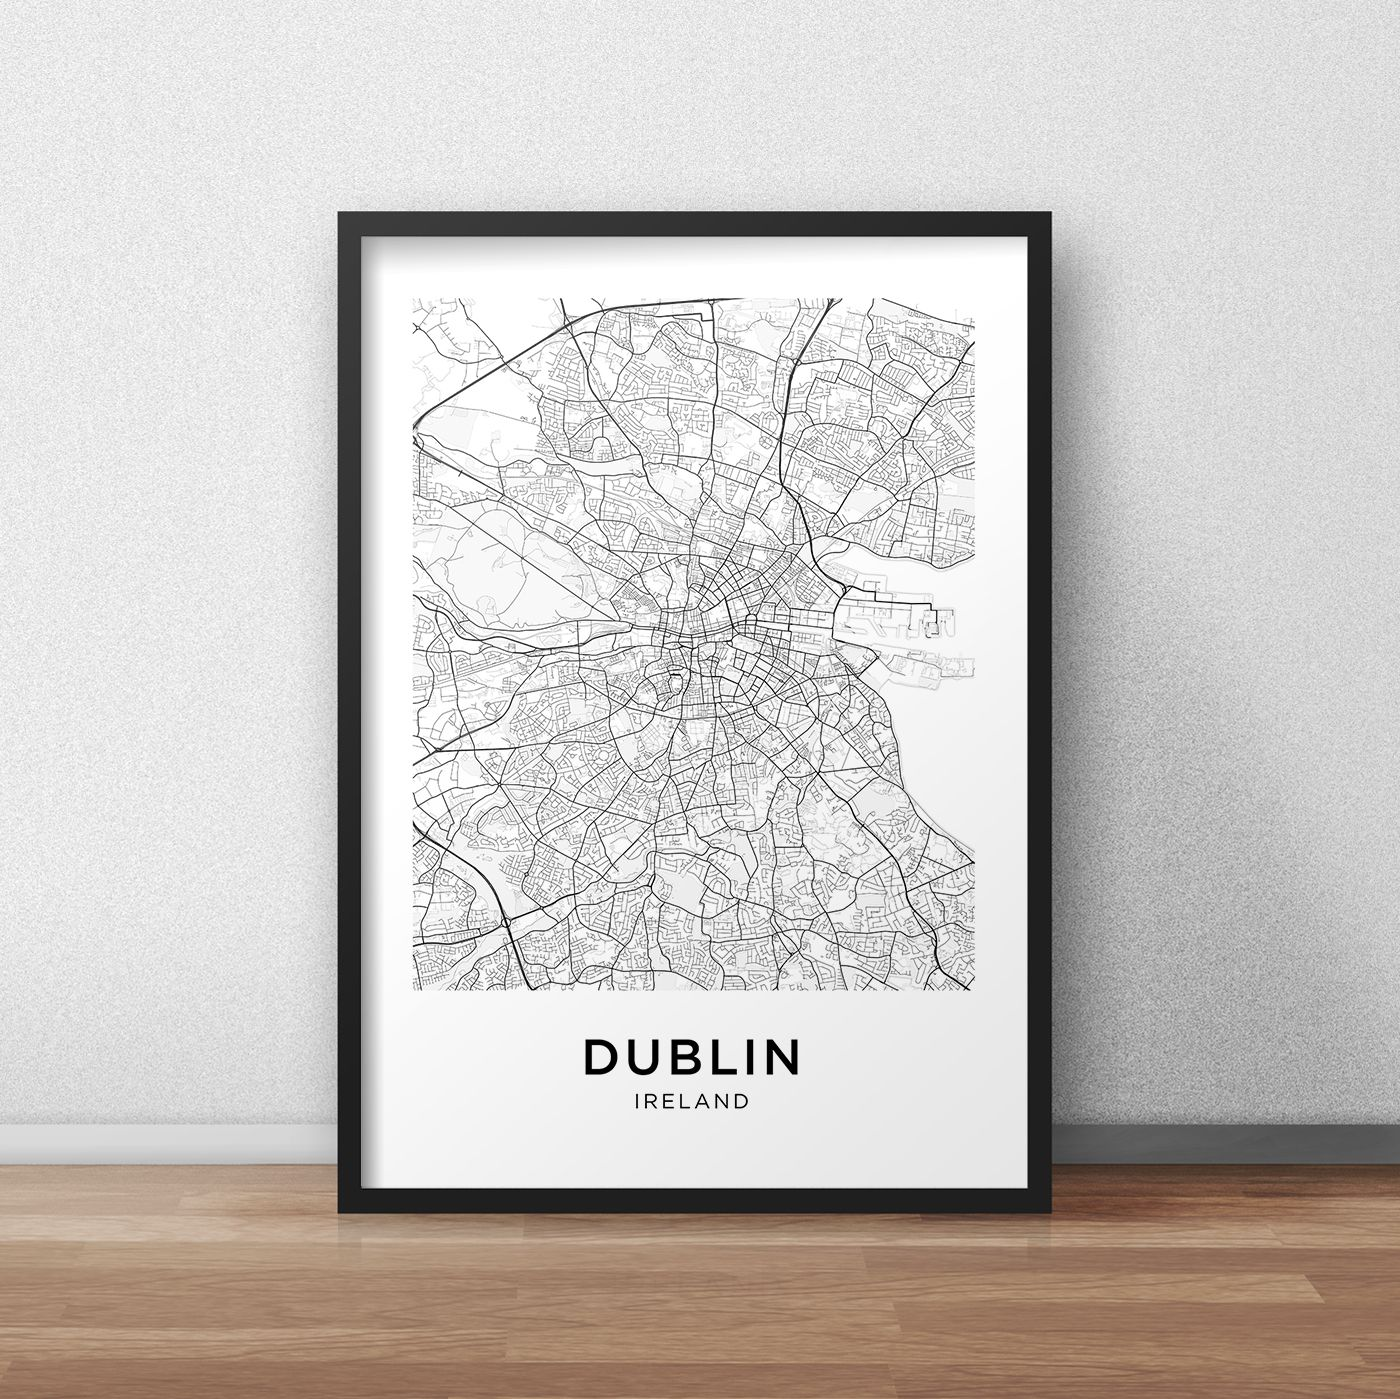 File:dublin printable tourist attractions map. Jpg wikimedia commons.